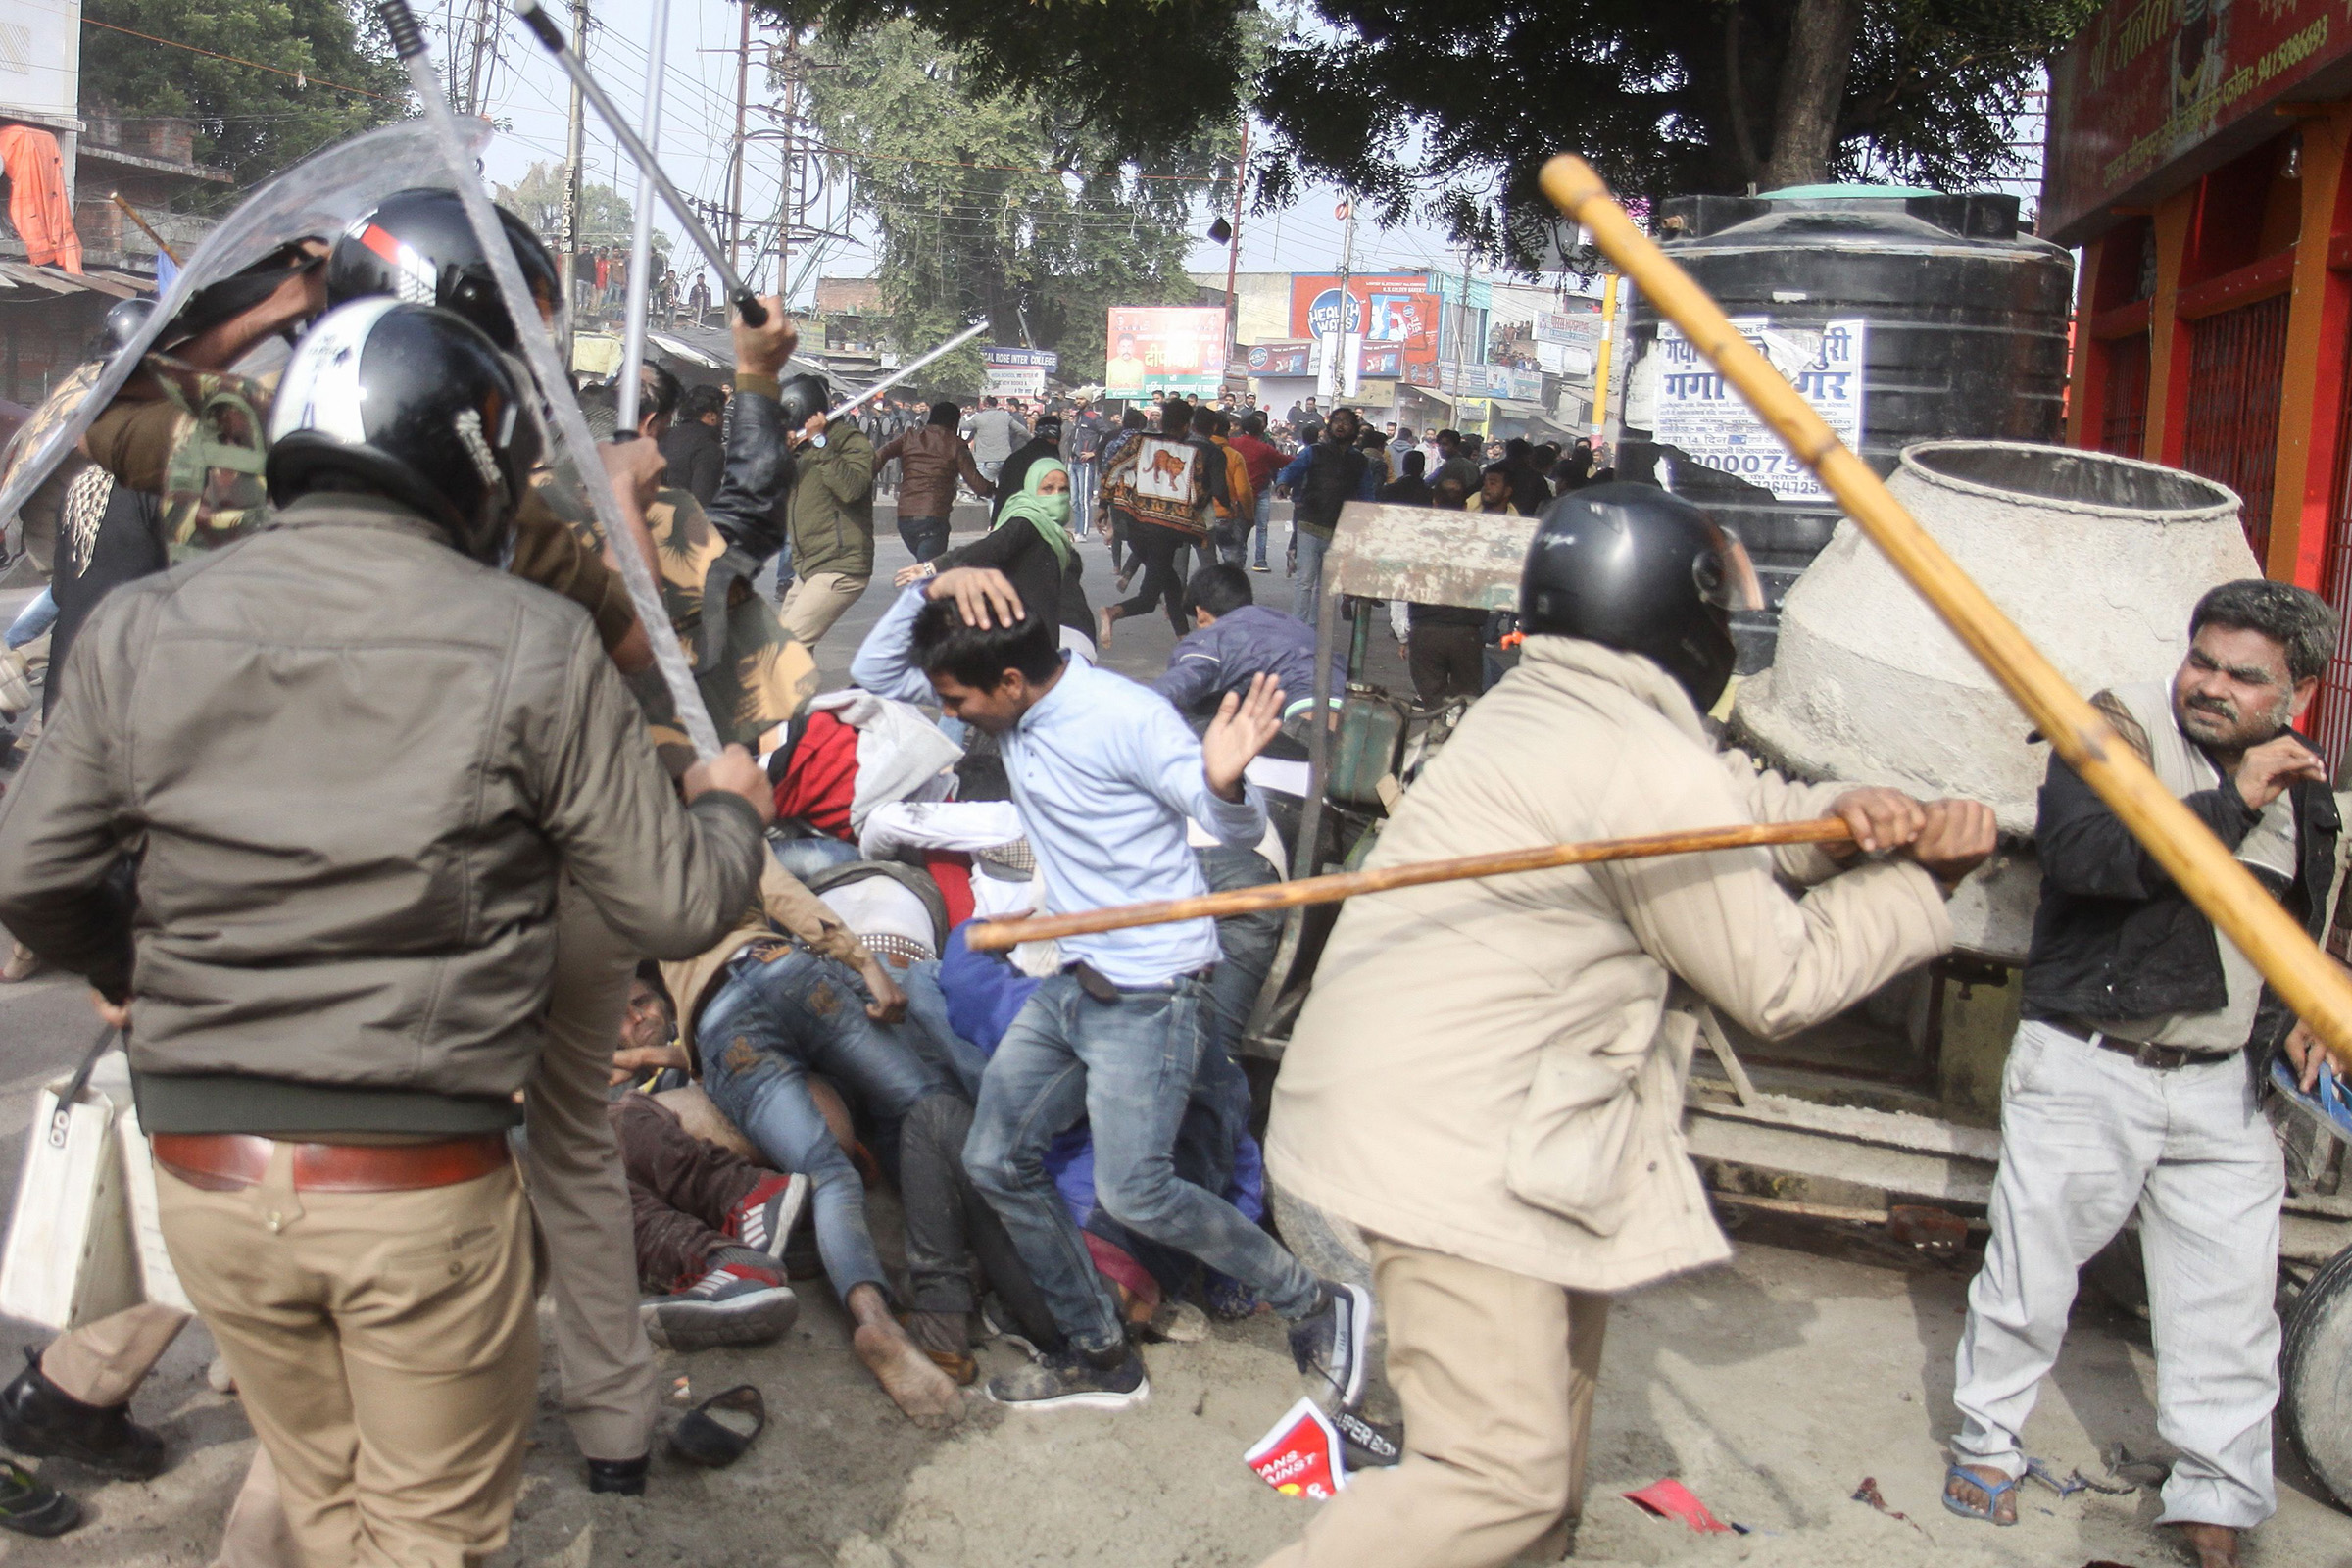 Police beat protesters with sticks during a demonstration against India's new citizenship law in Lucknow, Uttar Pradesh, India on Dec. 19, 2019.